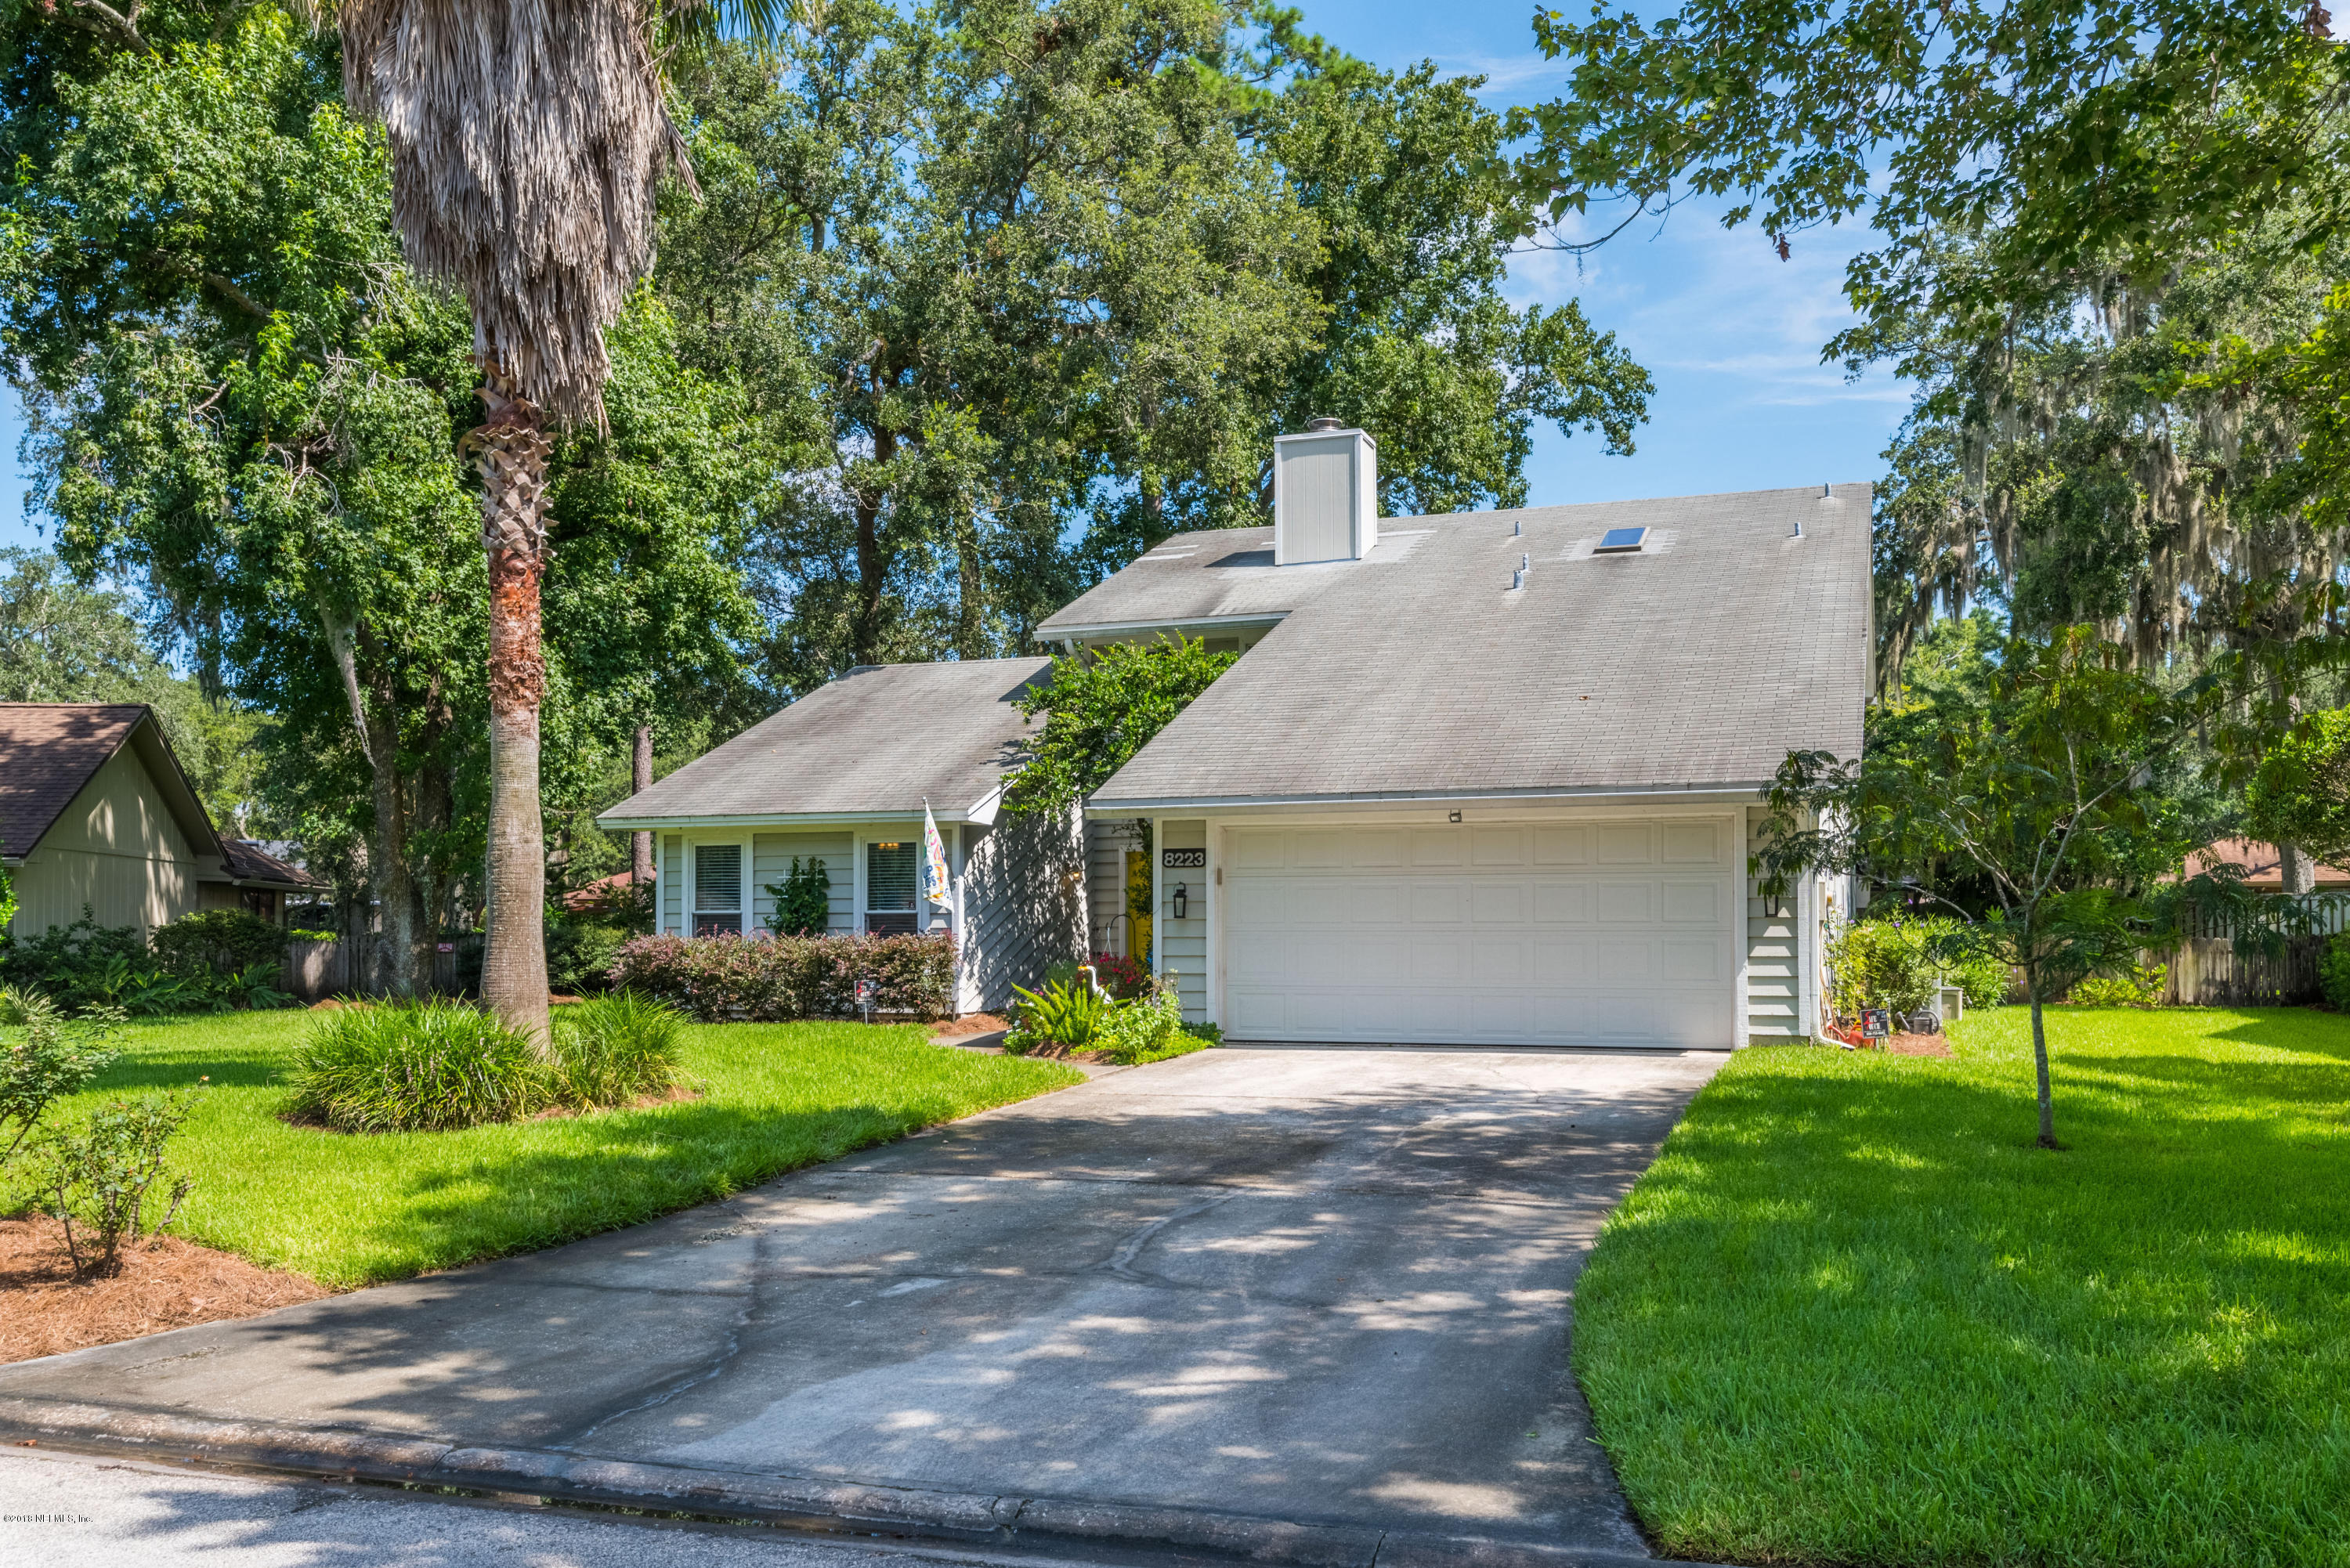 8223 KETCH, JACKSONVILLE, FLORIDA 32216, 3 Bedrooms Bedrooms, ,2 BathroomsBathrooms,Residential - single family,For sale,KETCH,946939